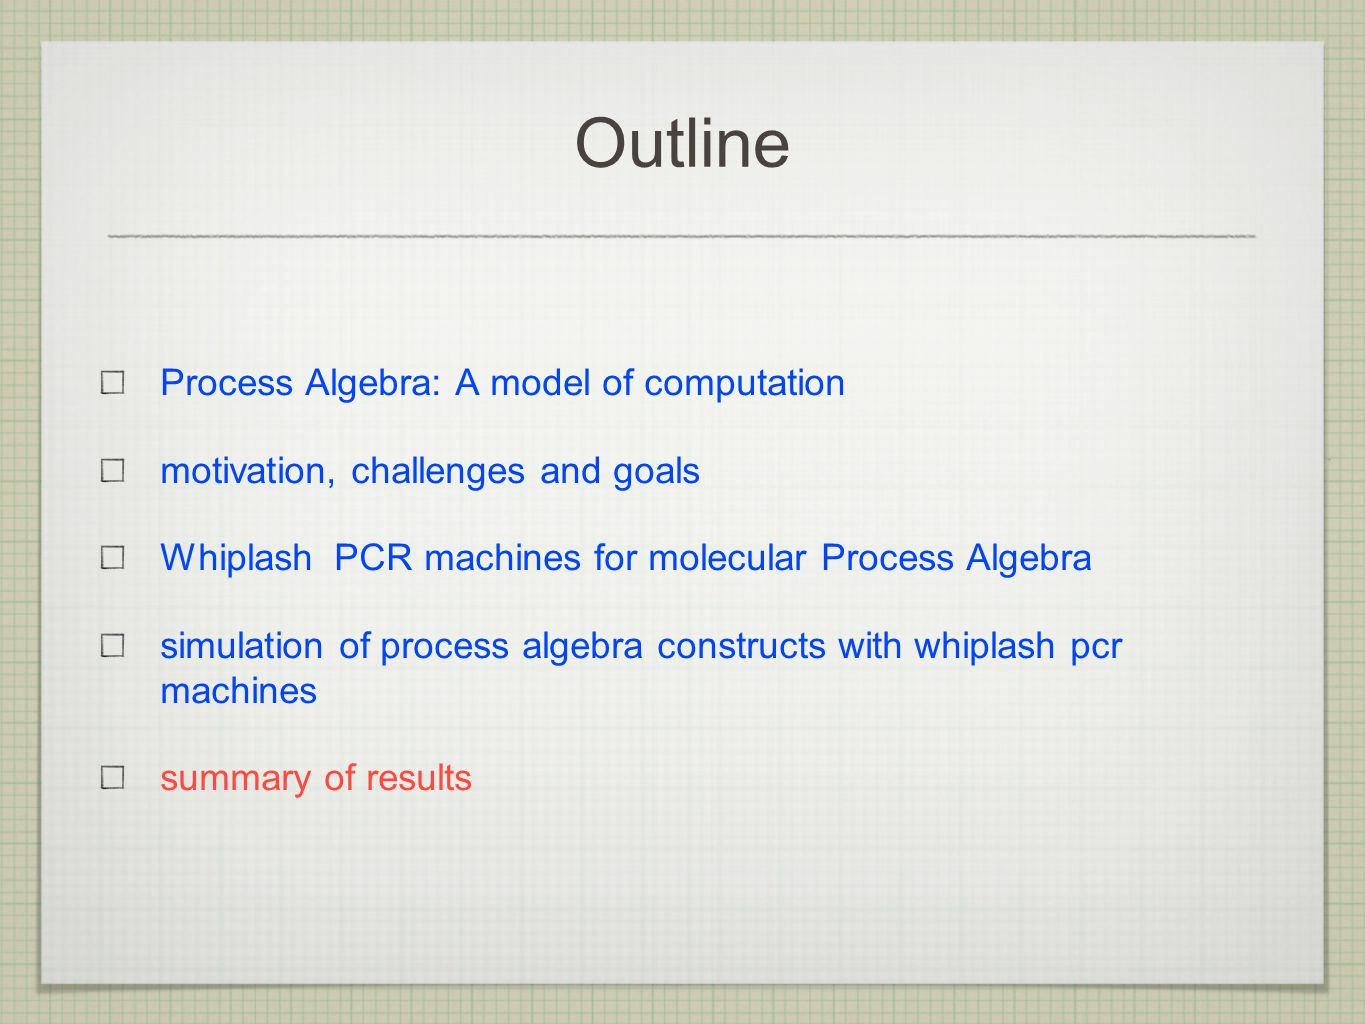 Outline Process Algebra: A model of computation motivation, challenges and goals Whiplash PCR machines for molecular Process Algebra simulation of process algebra constructs with whiplash pcr machines summary of results